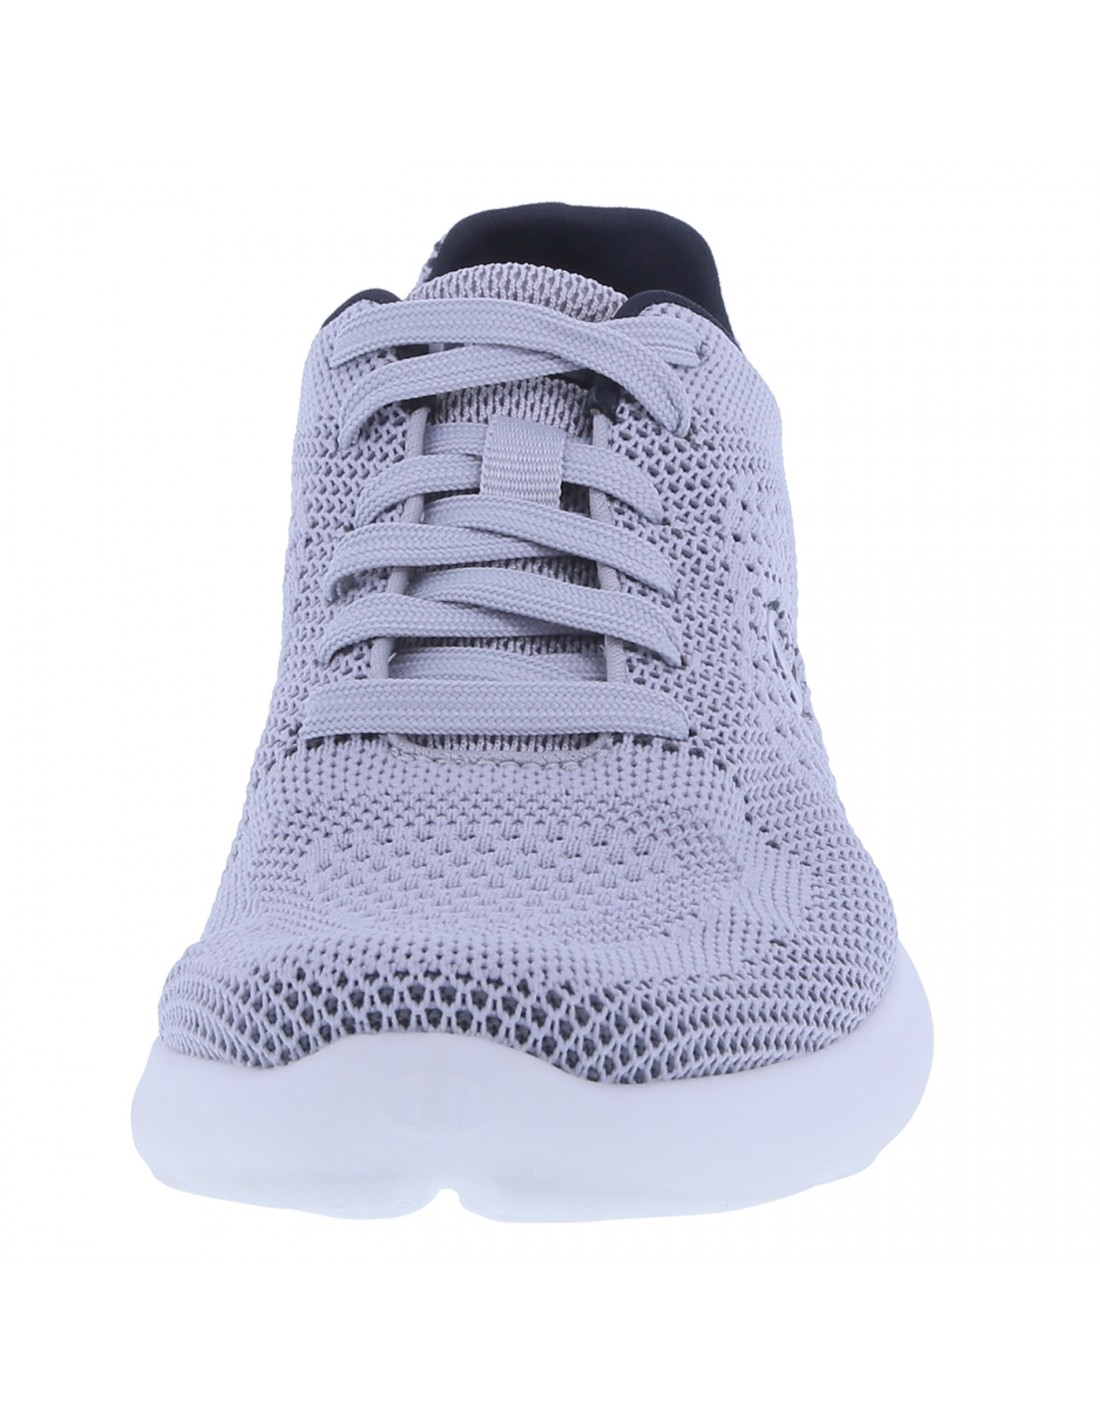 10ef3ef15bd4 Women s Activate Power Knit Runner - Grey. On sale! Previous